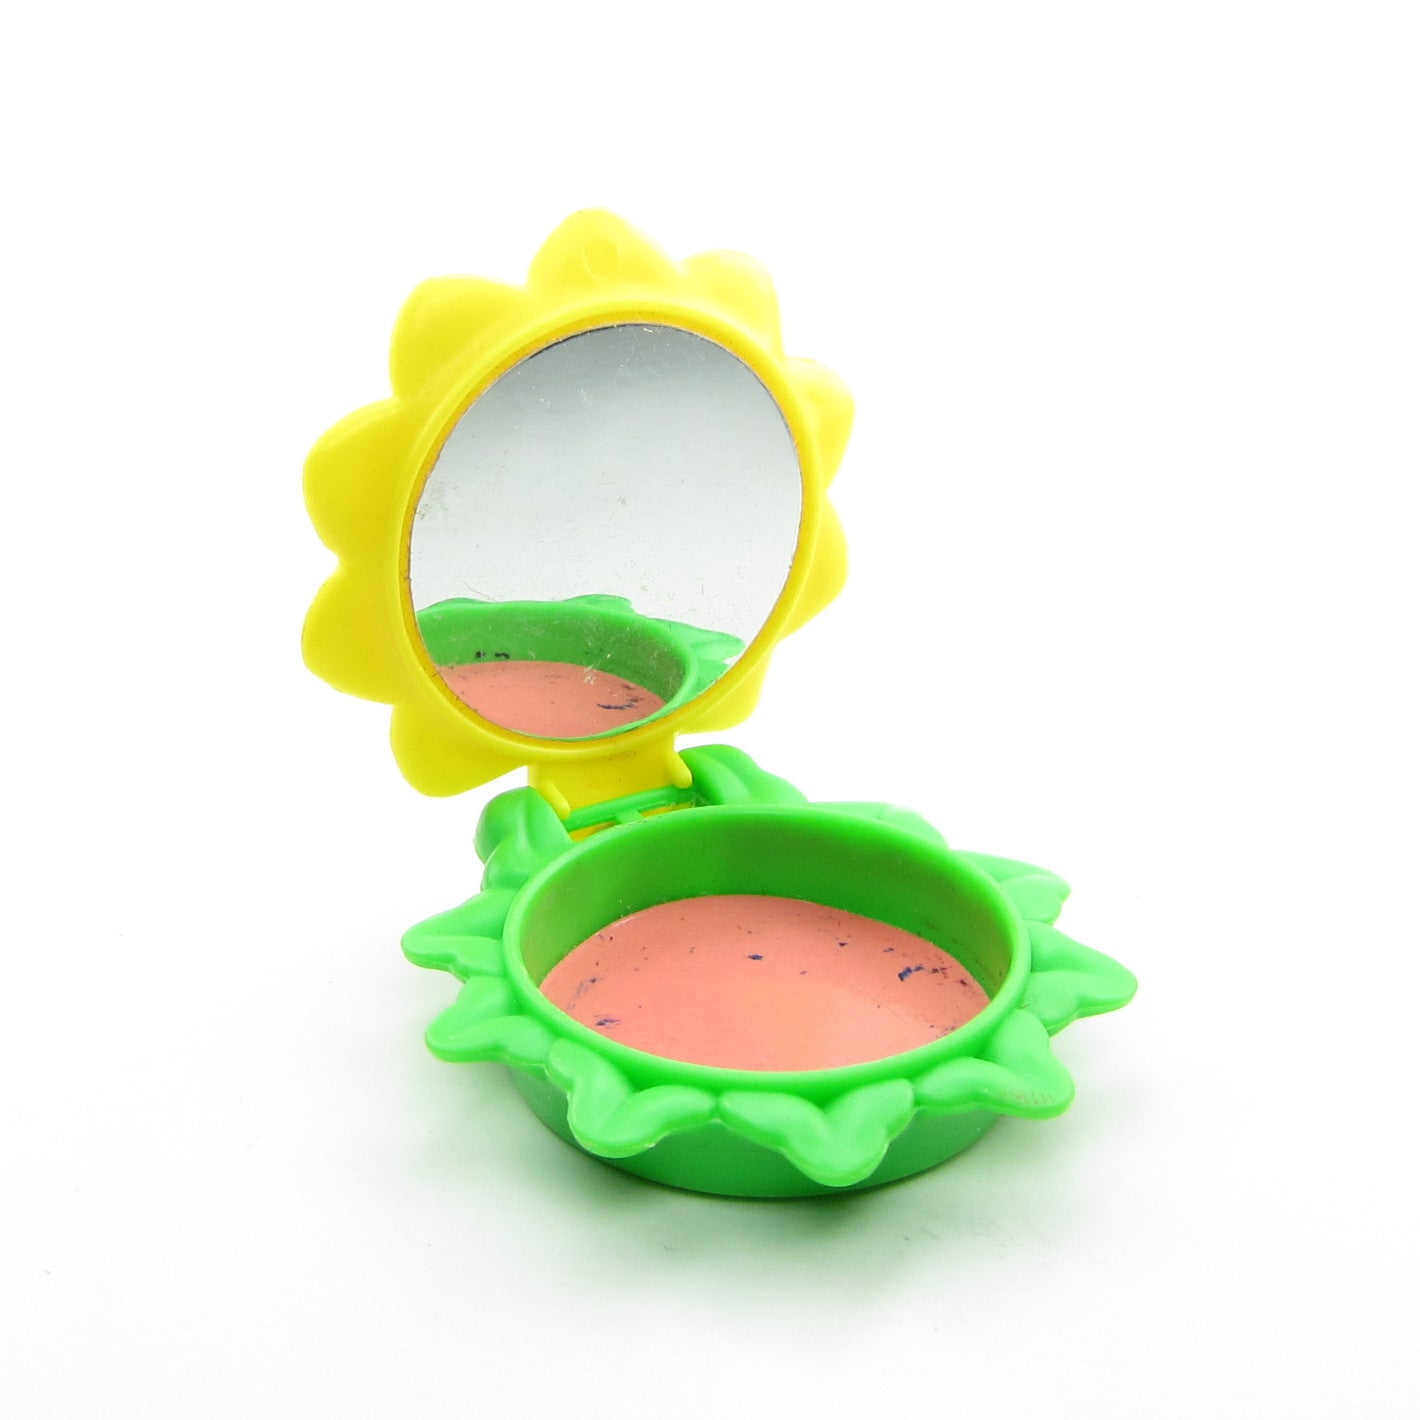 Pretend blush compact for Strawberry Shortcake Berry Grown Up Purse toddler toy